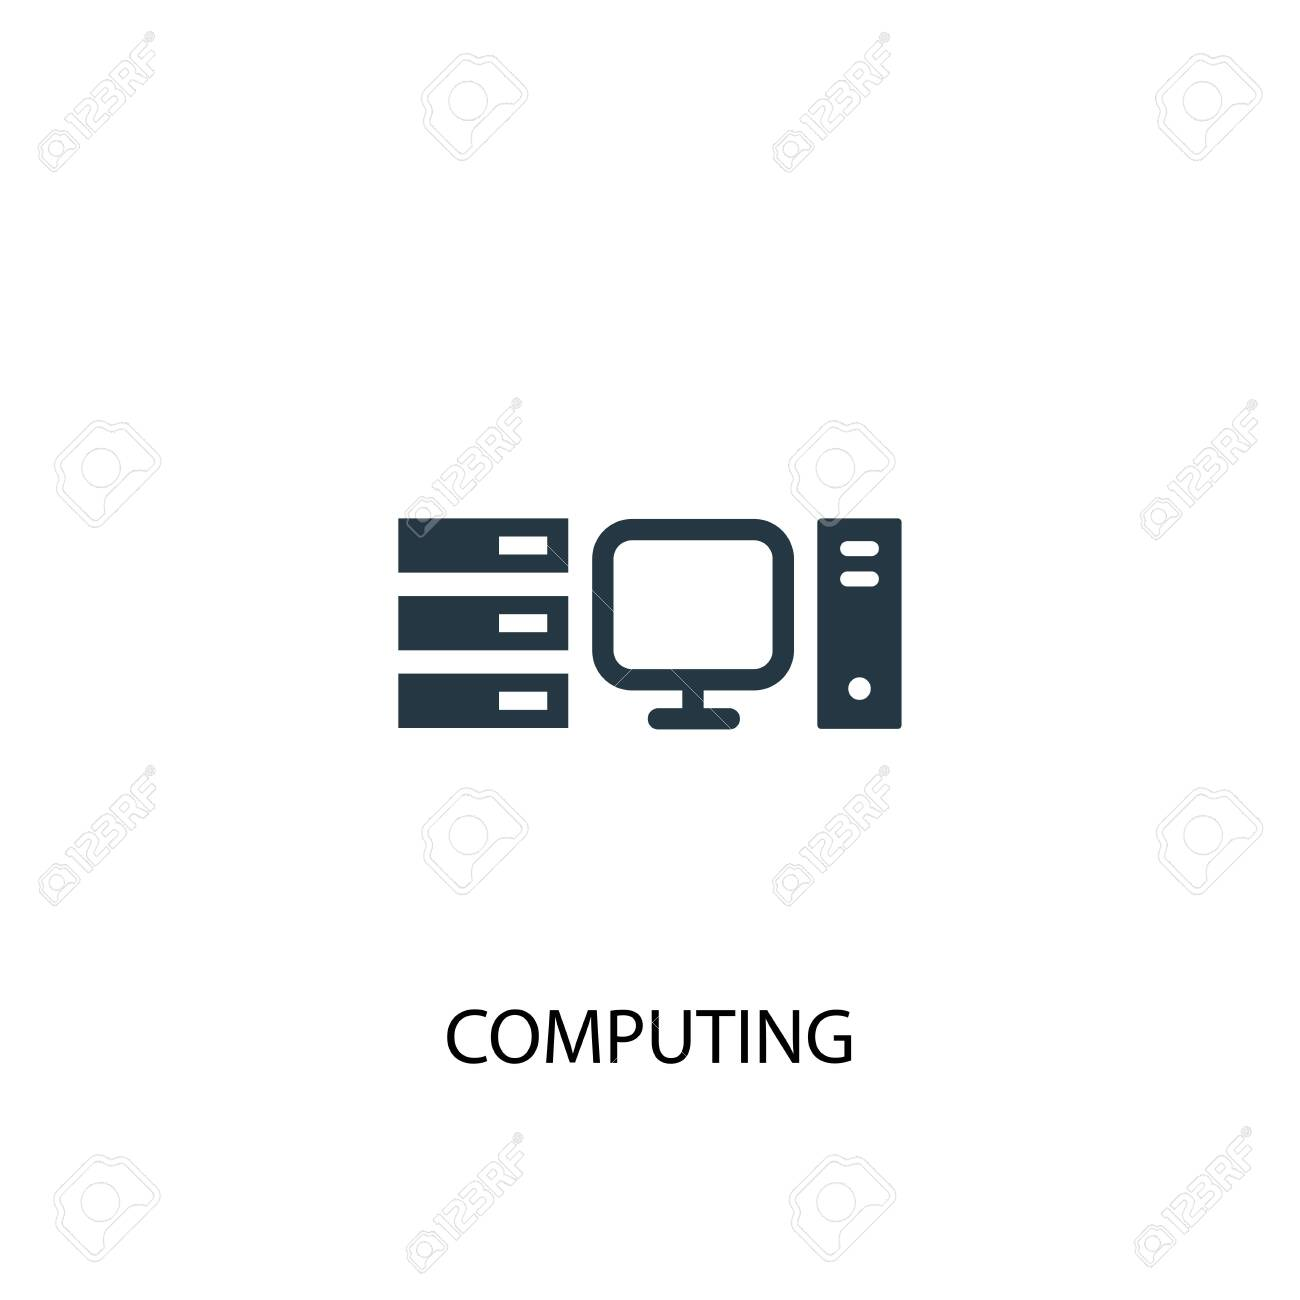 computing icon. Simple element illustration. computing concept symbol design. Can be used for web and mobile. - 130135180